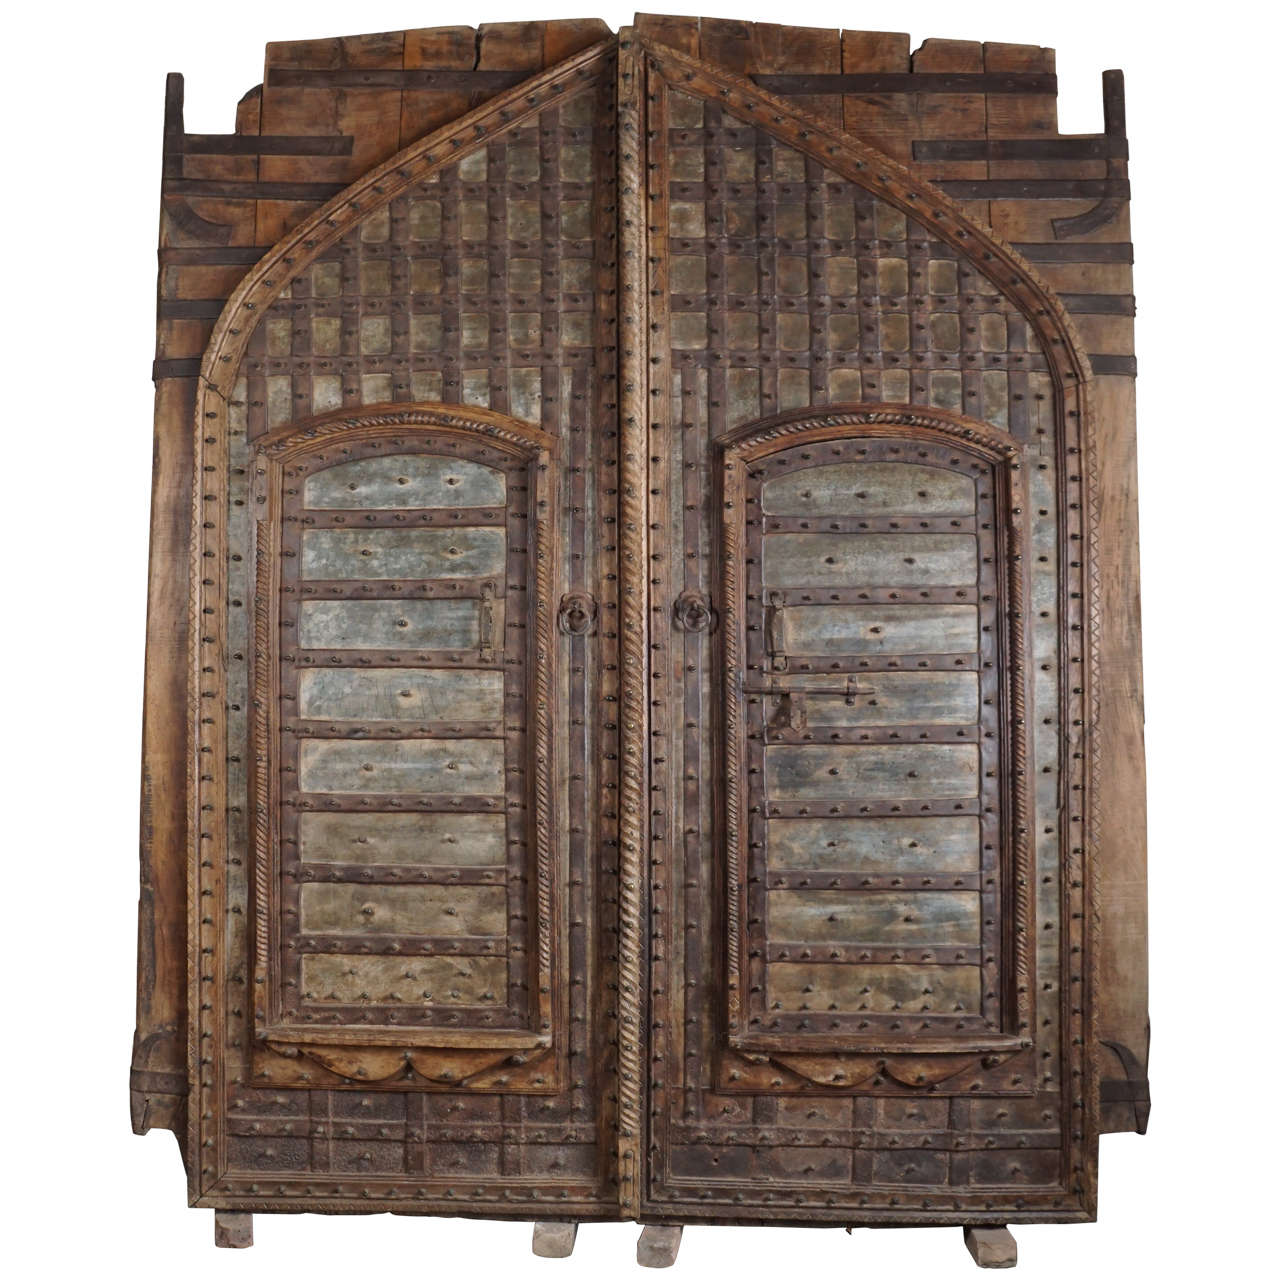 Monumental 19th Century Teak and Iron Fortress Doors